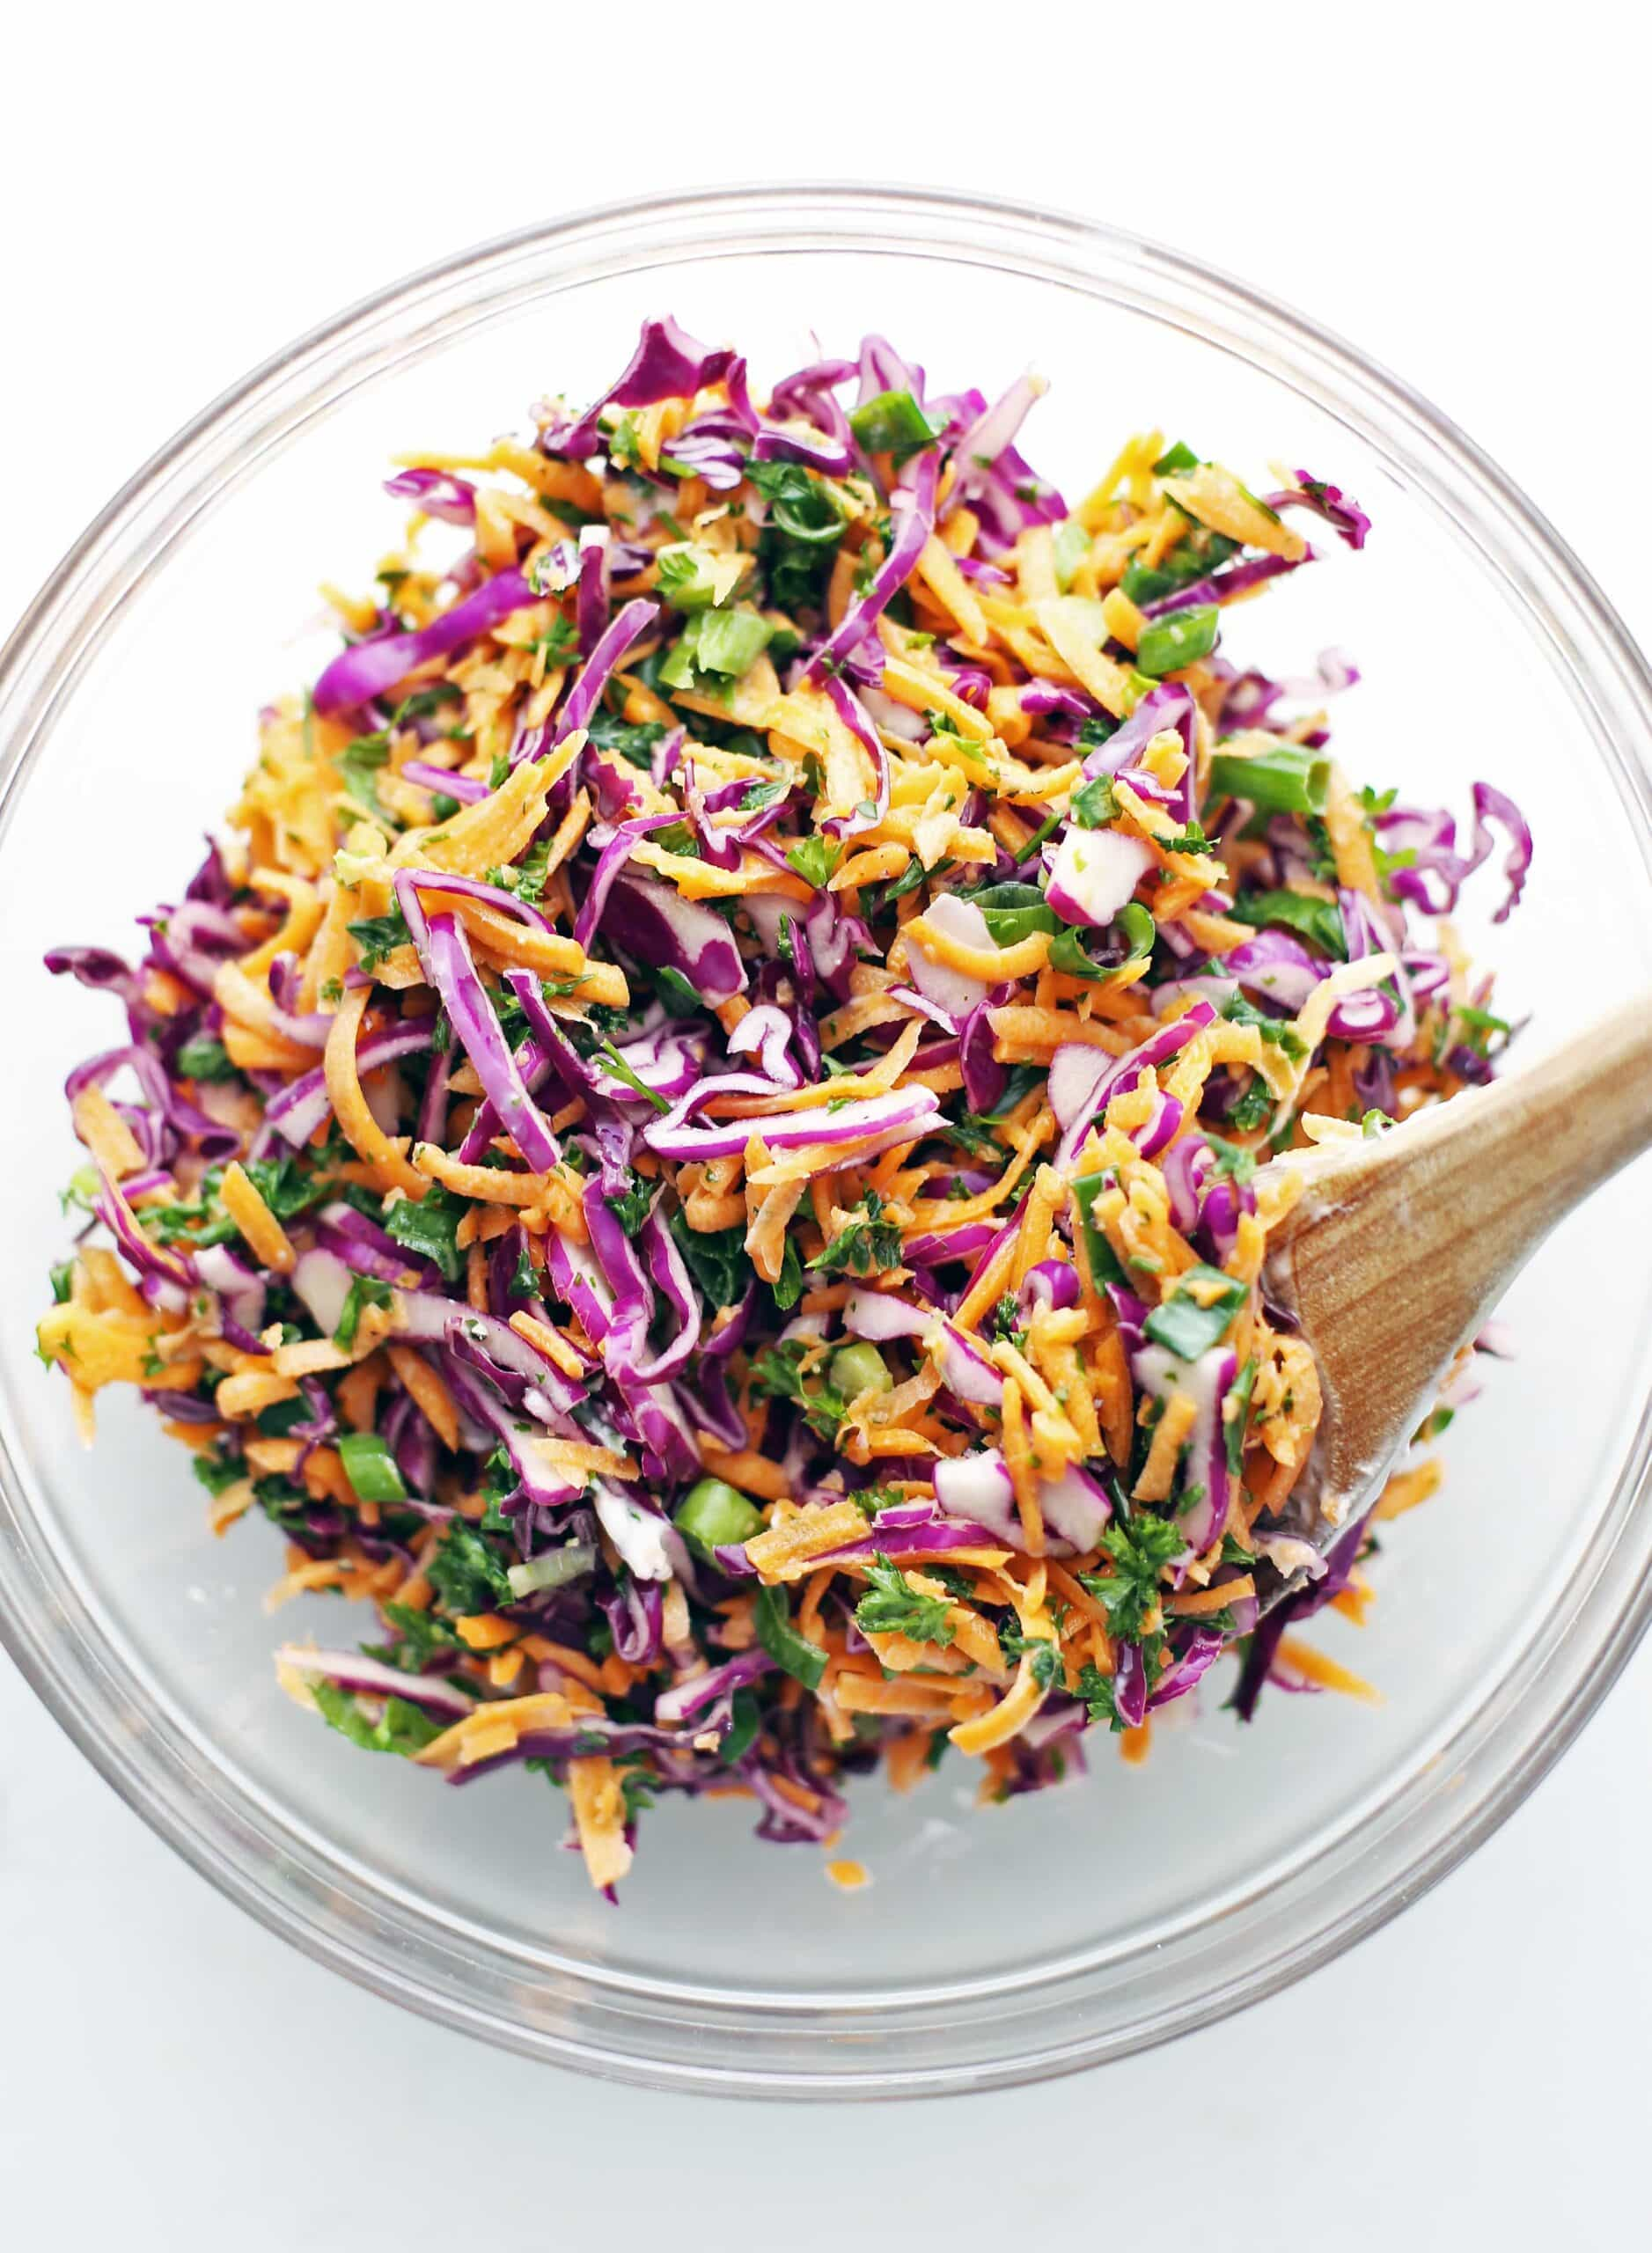 A glass bowl containing colourful and healthy carrot cabbage coleslaw.